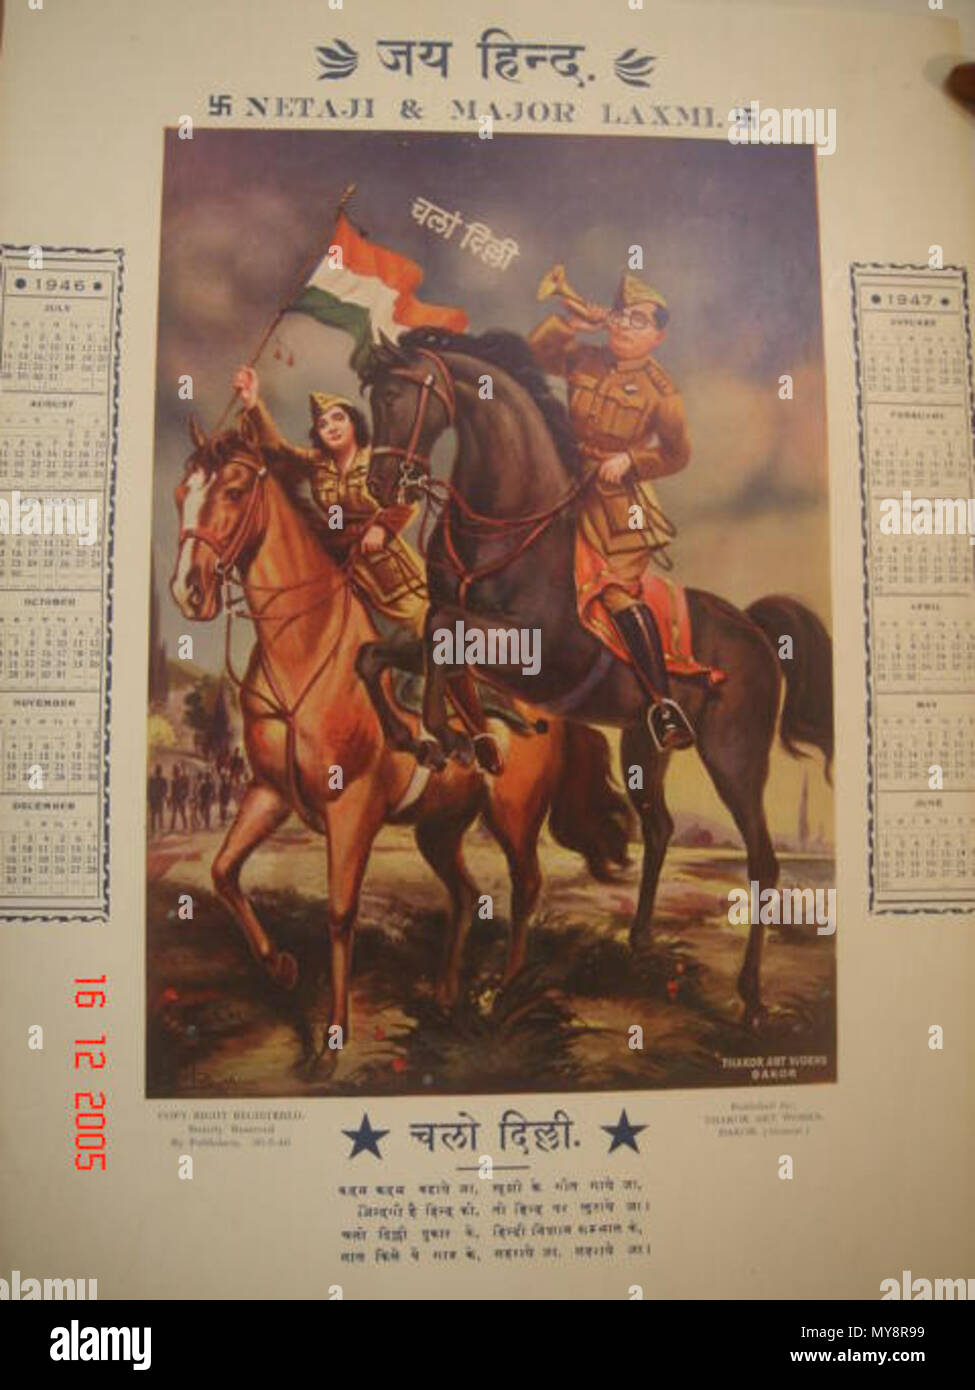 . English: Calendar art memorializing Netaji, 1946-47: he is given a sword by Durga, and then attacks: 'Chalo Dilli!' (On to Delhi!) Source: ebay, Dec. 2006 . between 1946 and 1947. Unknown 104 Chalo Dilli - Stock Image